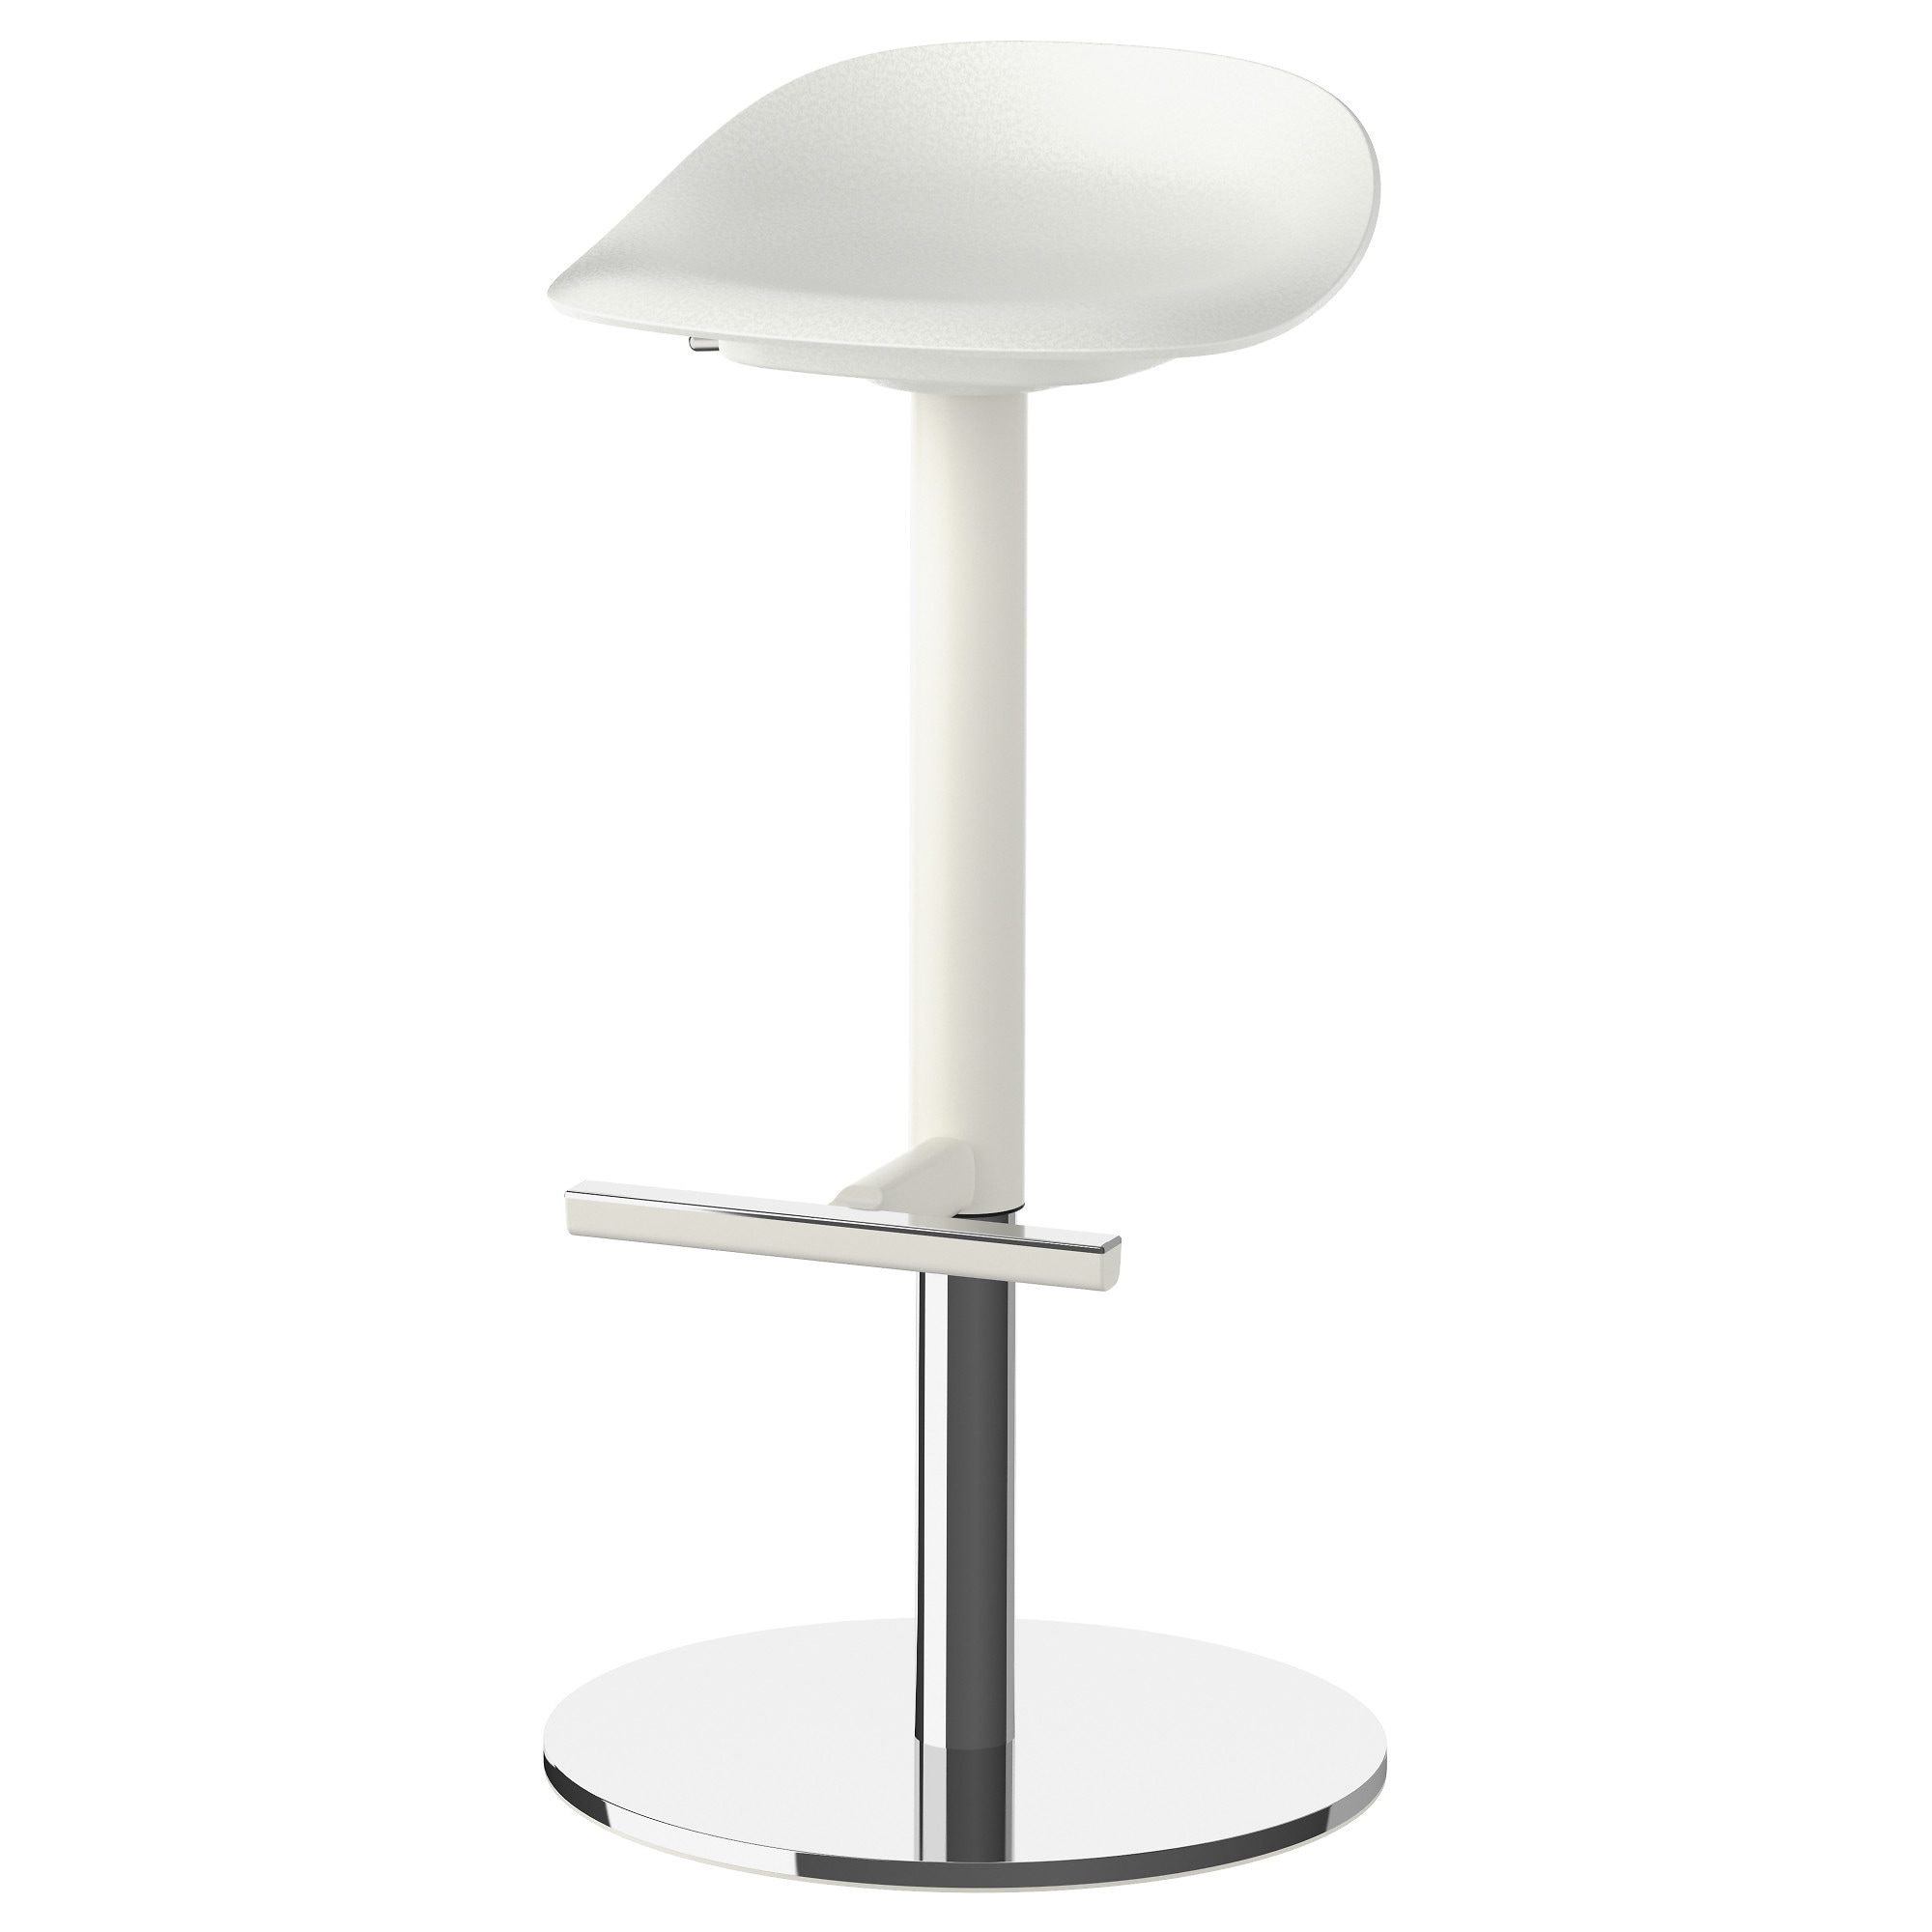 white bar stools ikea JANINGE Bar stool   IKEA white bar stools ikea